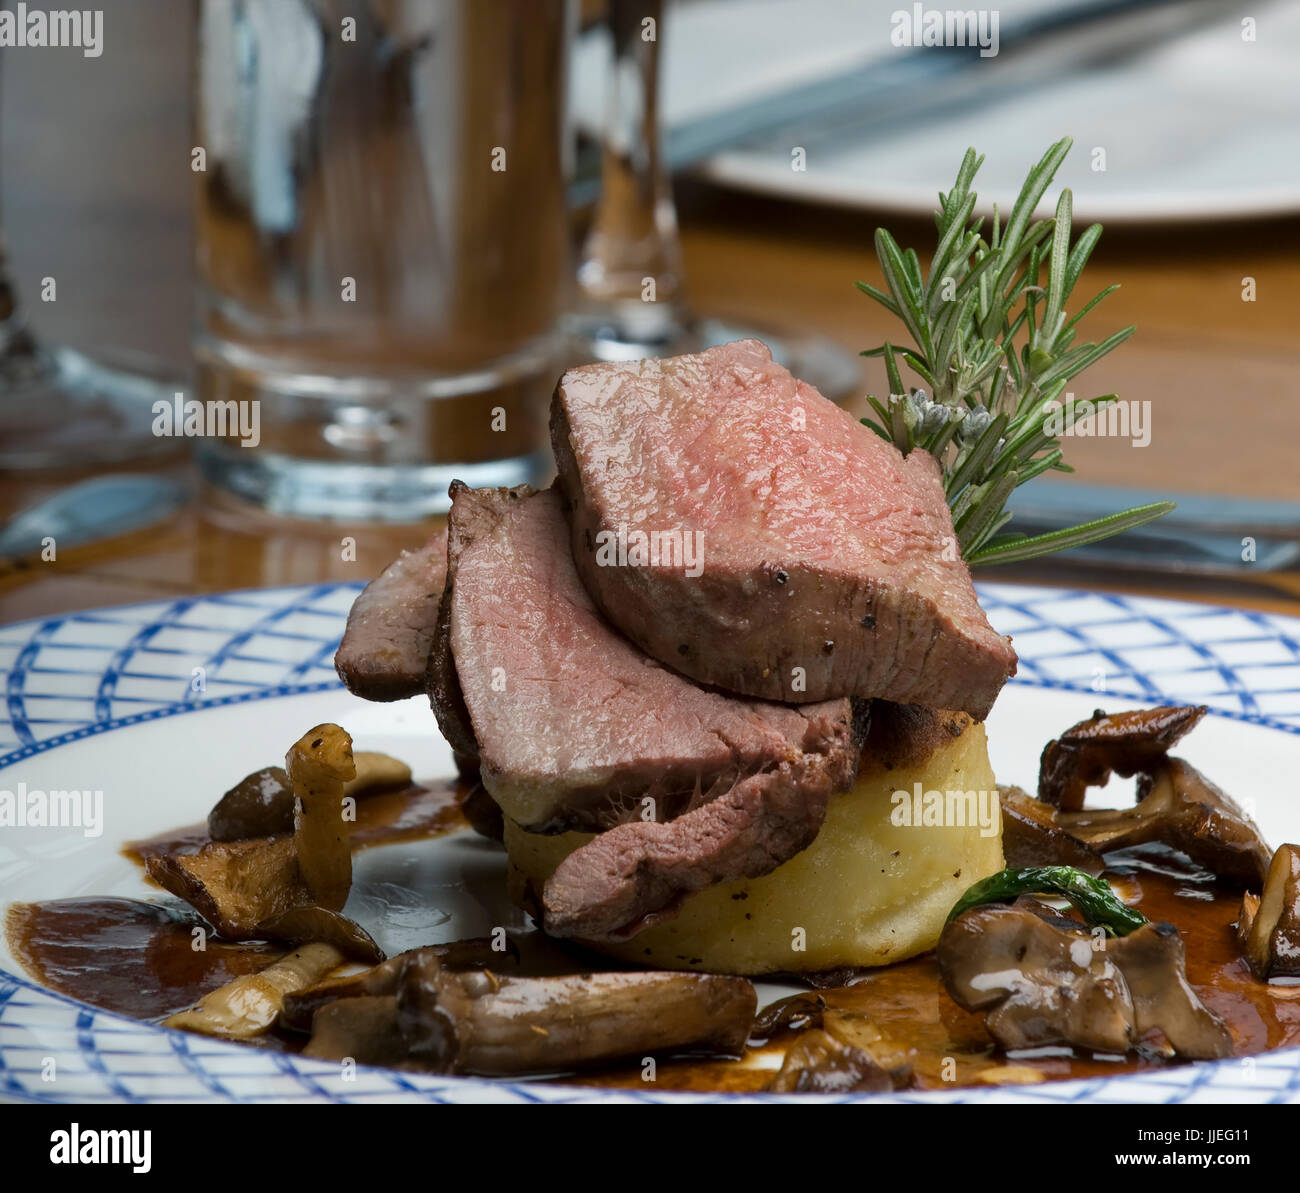 A Plate of Succulent Roast Lamb with Sauteed chanterelle mushrooms with a rosemary gravy - Stock Image